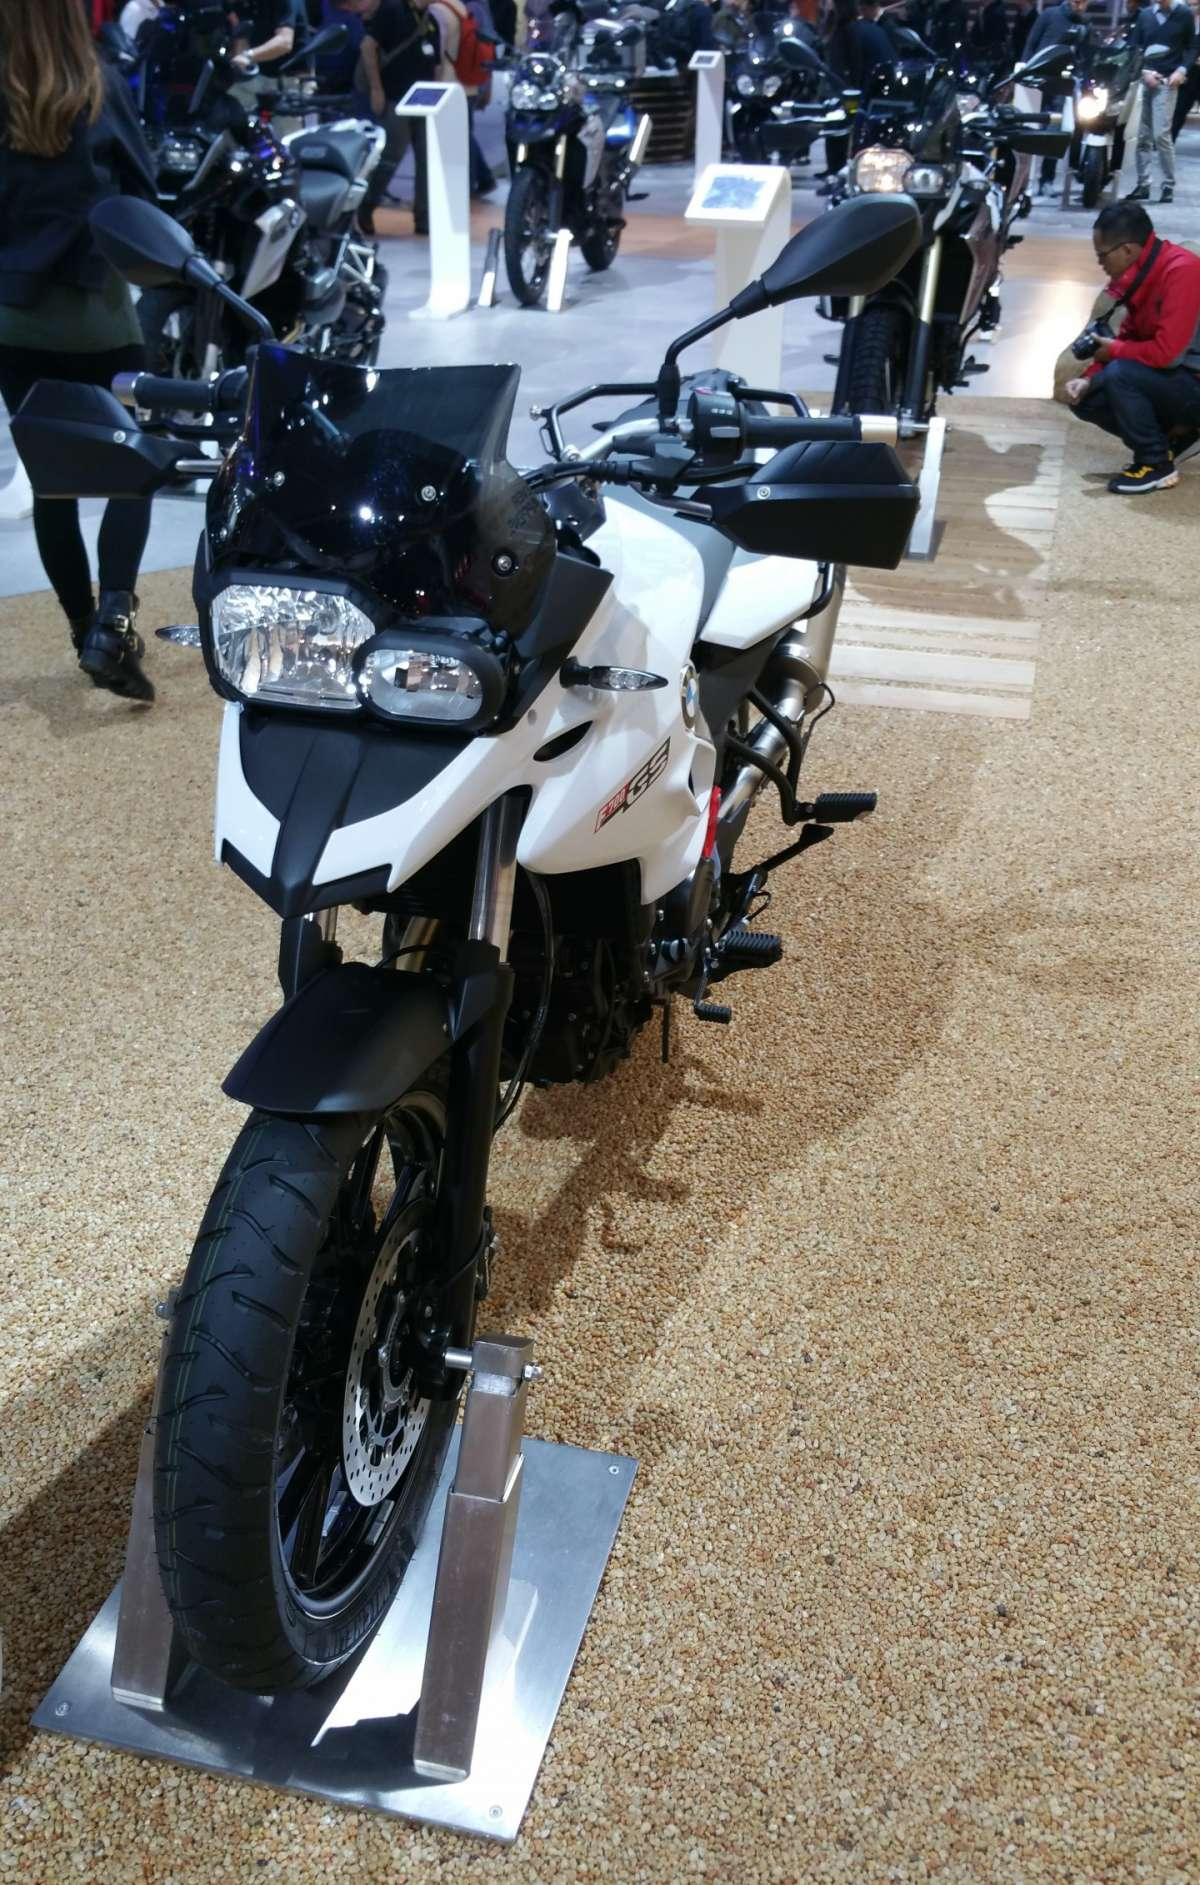 BMW F700 GS all'EICMA 2015